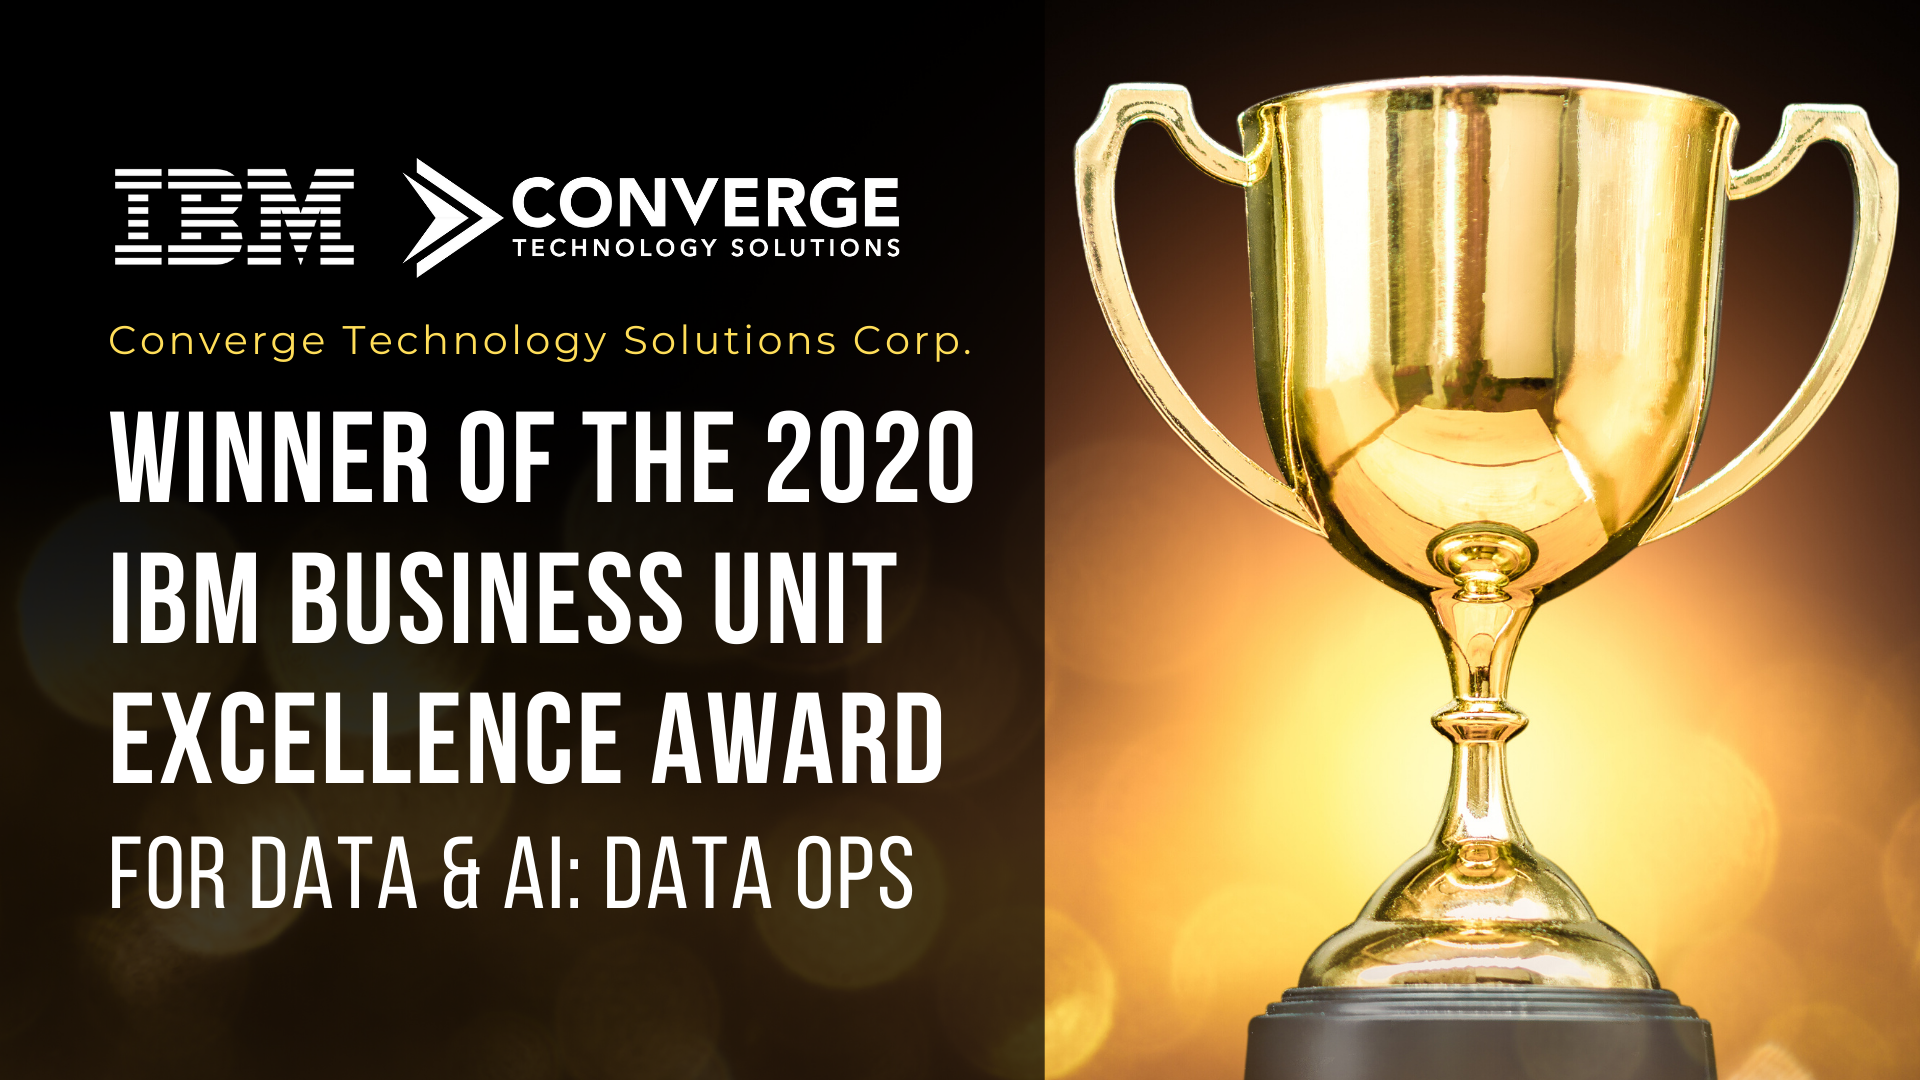 Converge Wins 2020 IBM Business Unit Excellence Award for Data & AI: DataOps